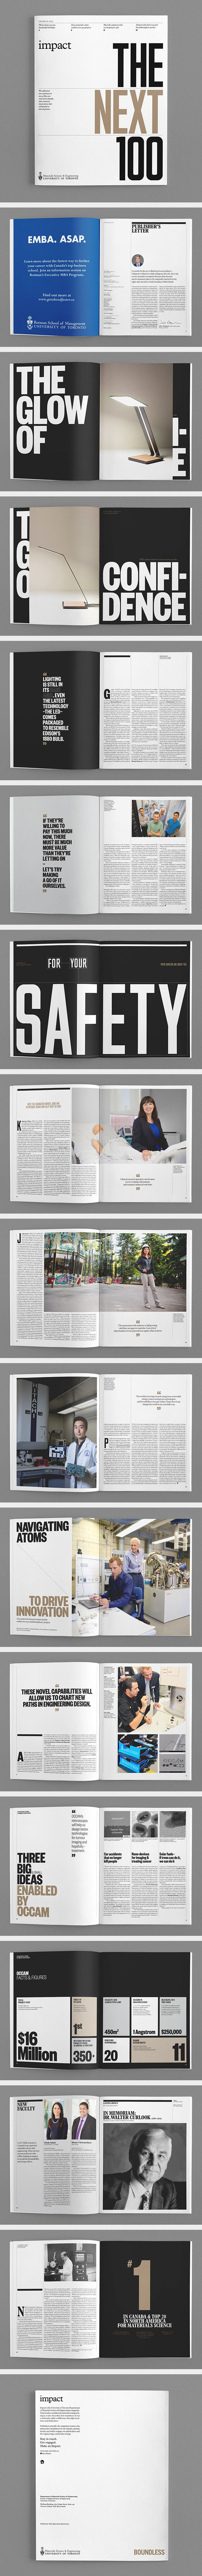 Impact Magazine, Issue 3 #editorial #design #magazines